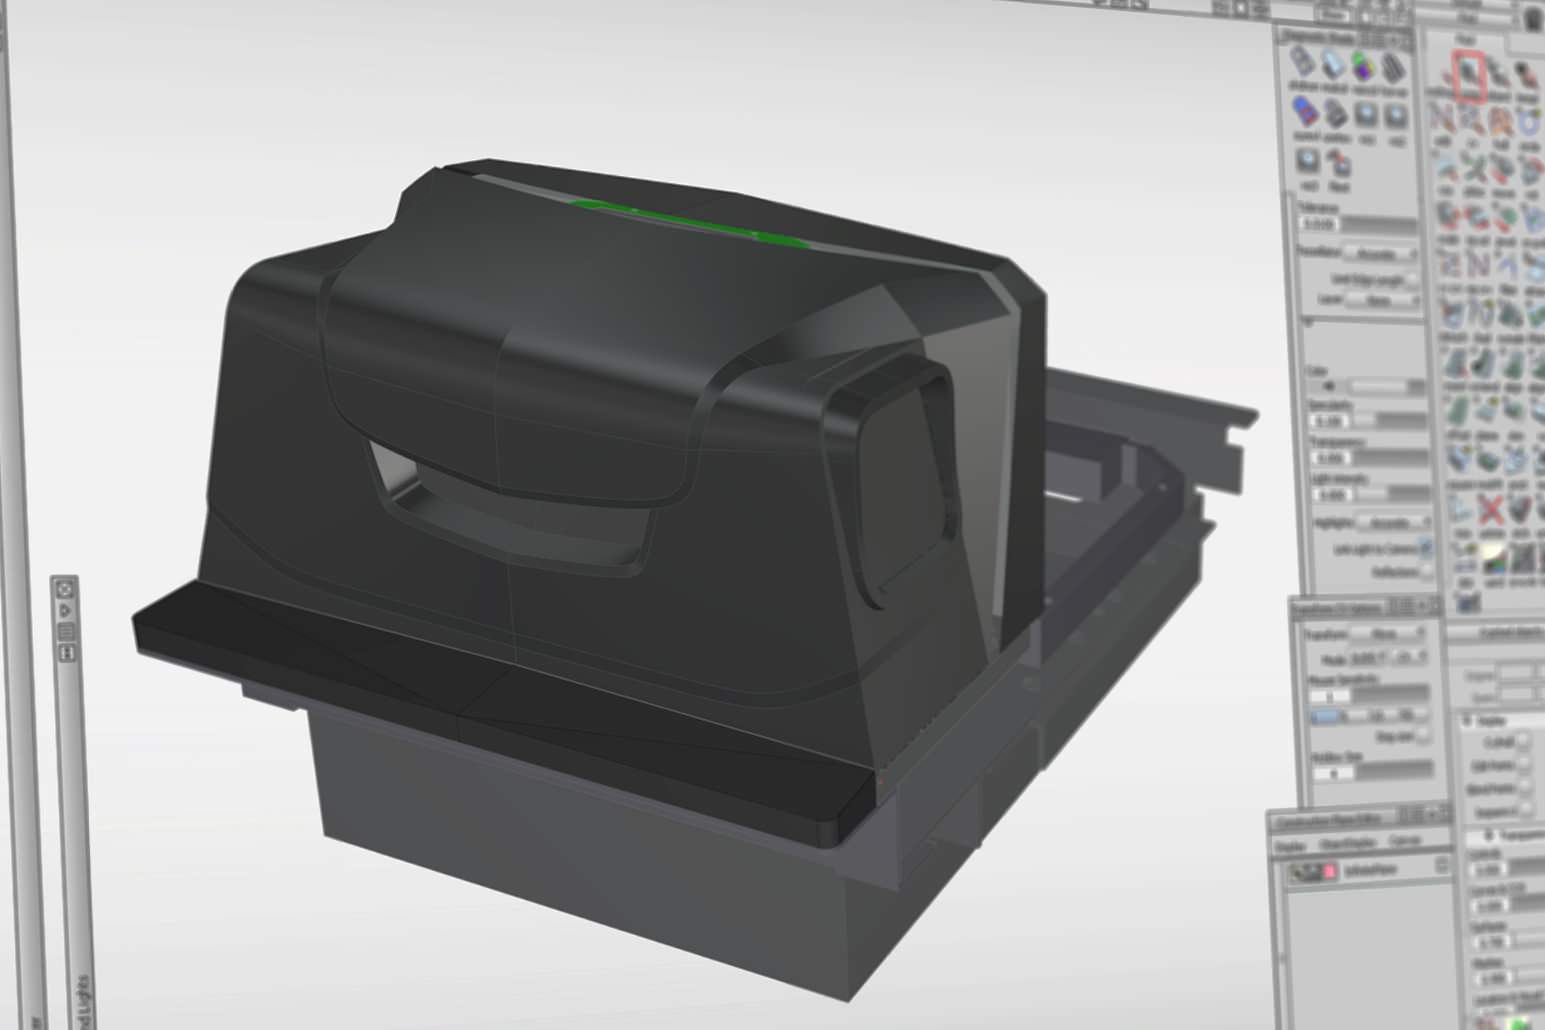 Rear view of the larger config MP6000 with the side mounted barcode scanner in the CAD file